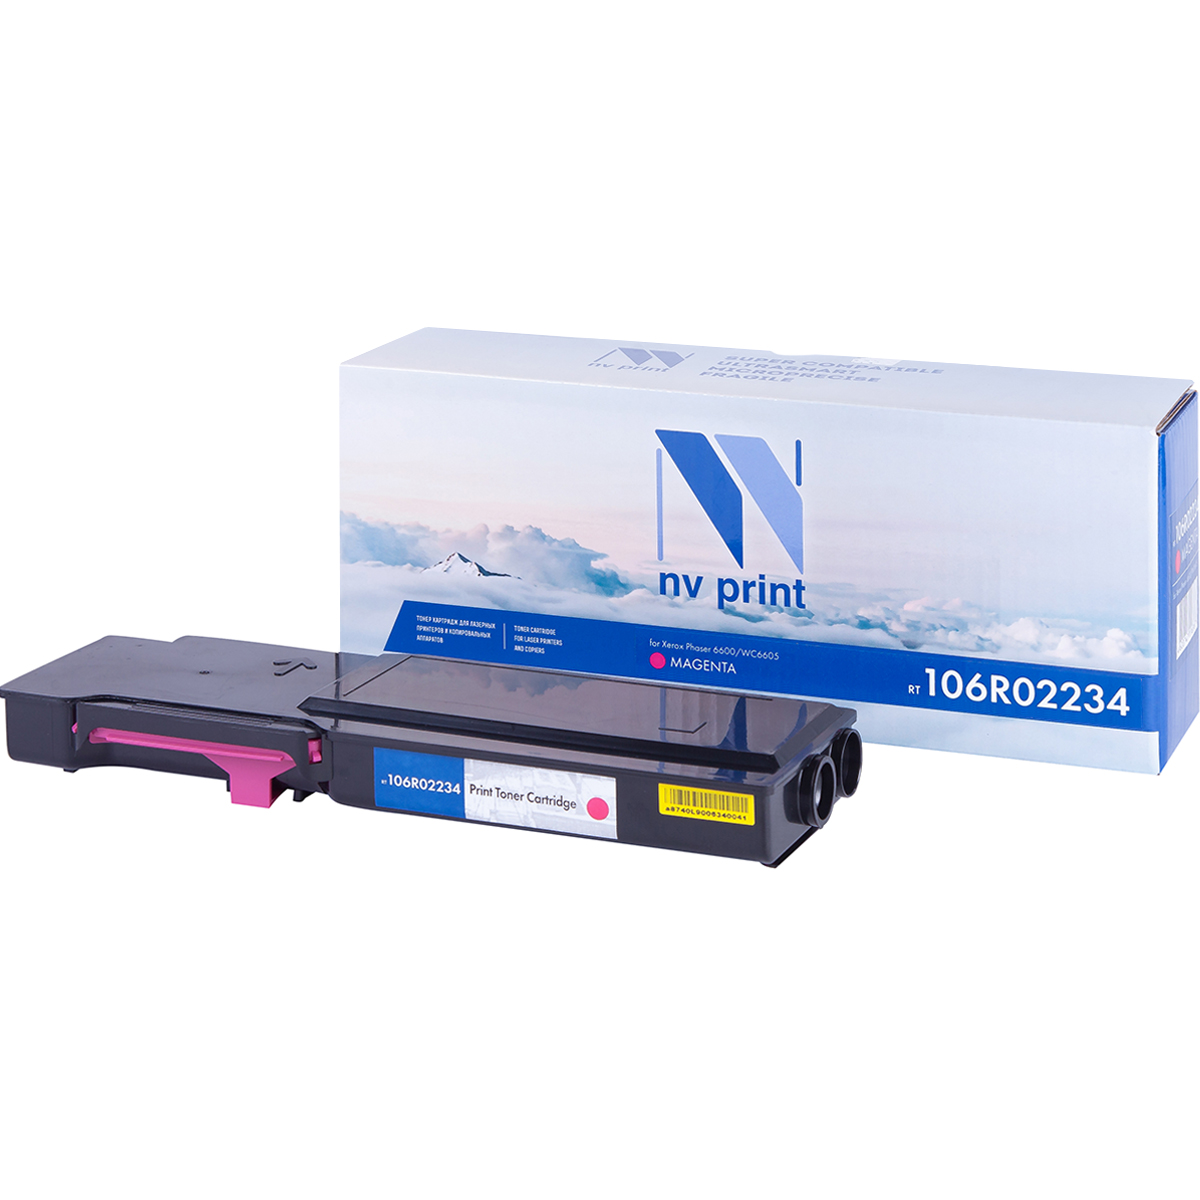 Фото - Картридж NV Print 106R02234 Magenta для Xerox Phaser 6600/WorkCentre 6605 (6000k) картридж nv print 106r02306 для xerox phaser 3320 11000k